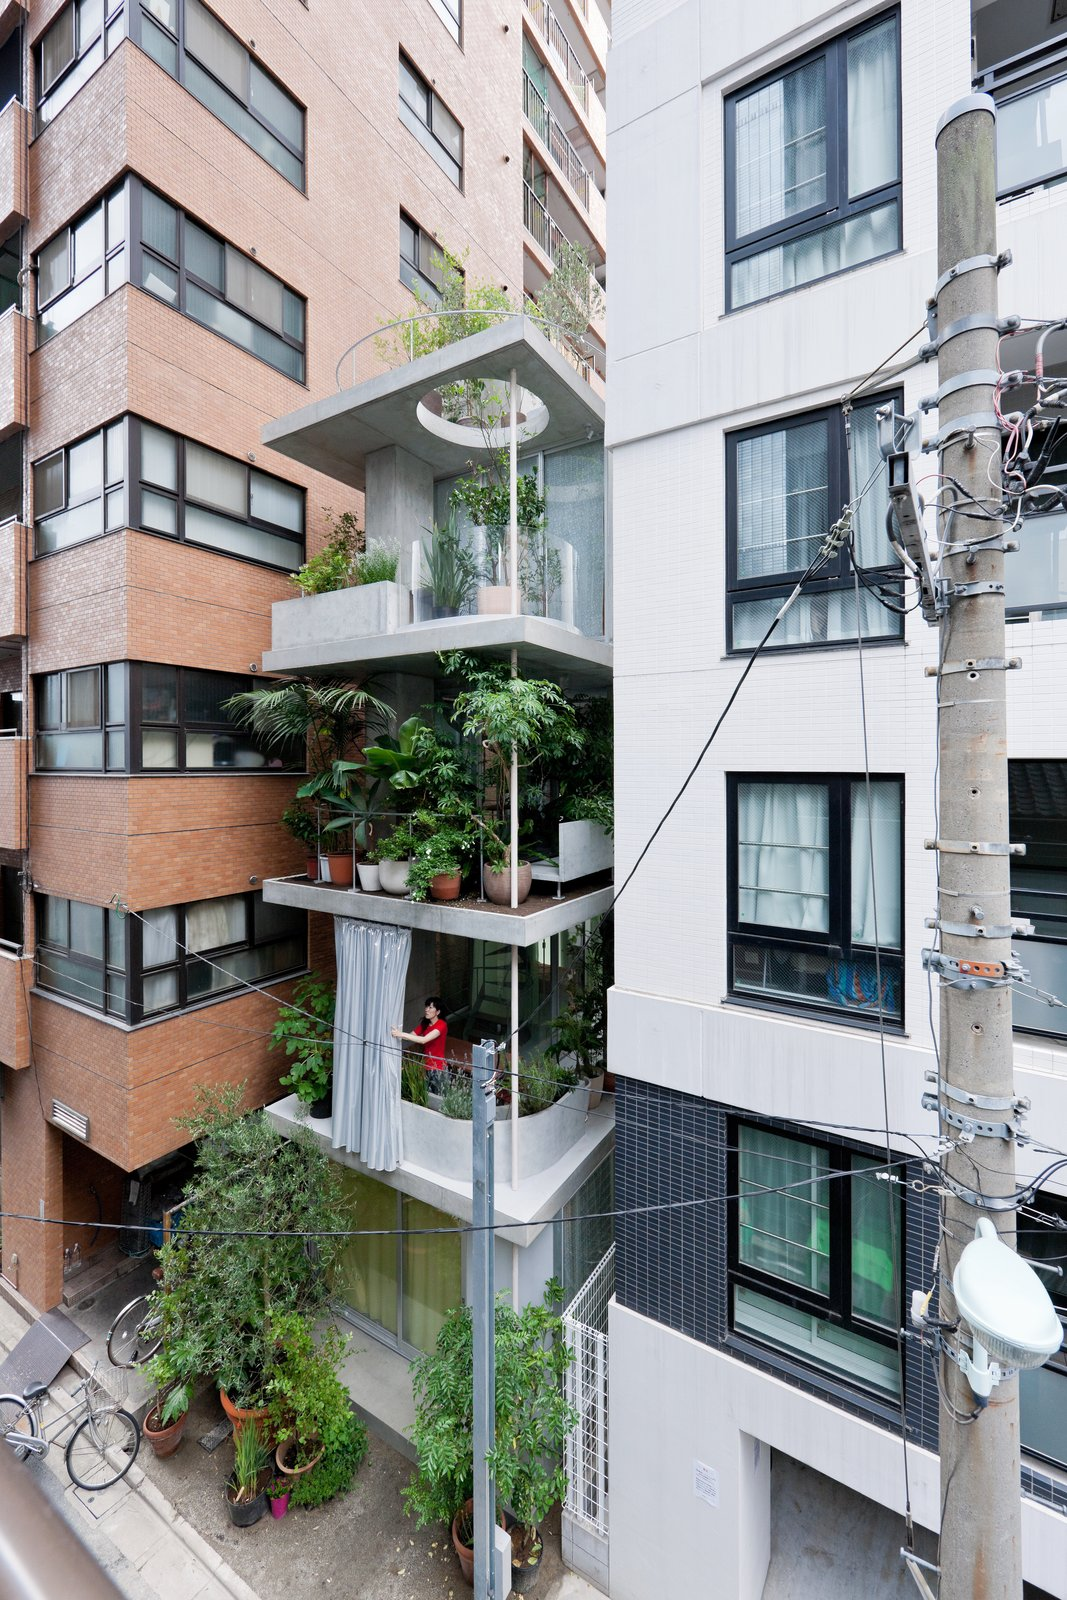 A series of open, street-facing gardens make up this five-story, 700-square-foot home in Tokyo, Japan. Called Garden & House, it was designed by Ryue Nishizawa, and serves as part of a study of new urban lifestyles for the non-nuclear family.  Japanese Homes by Dwell from These Contemporary Homes Defy Convention